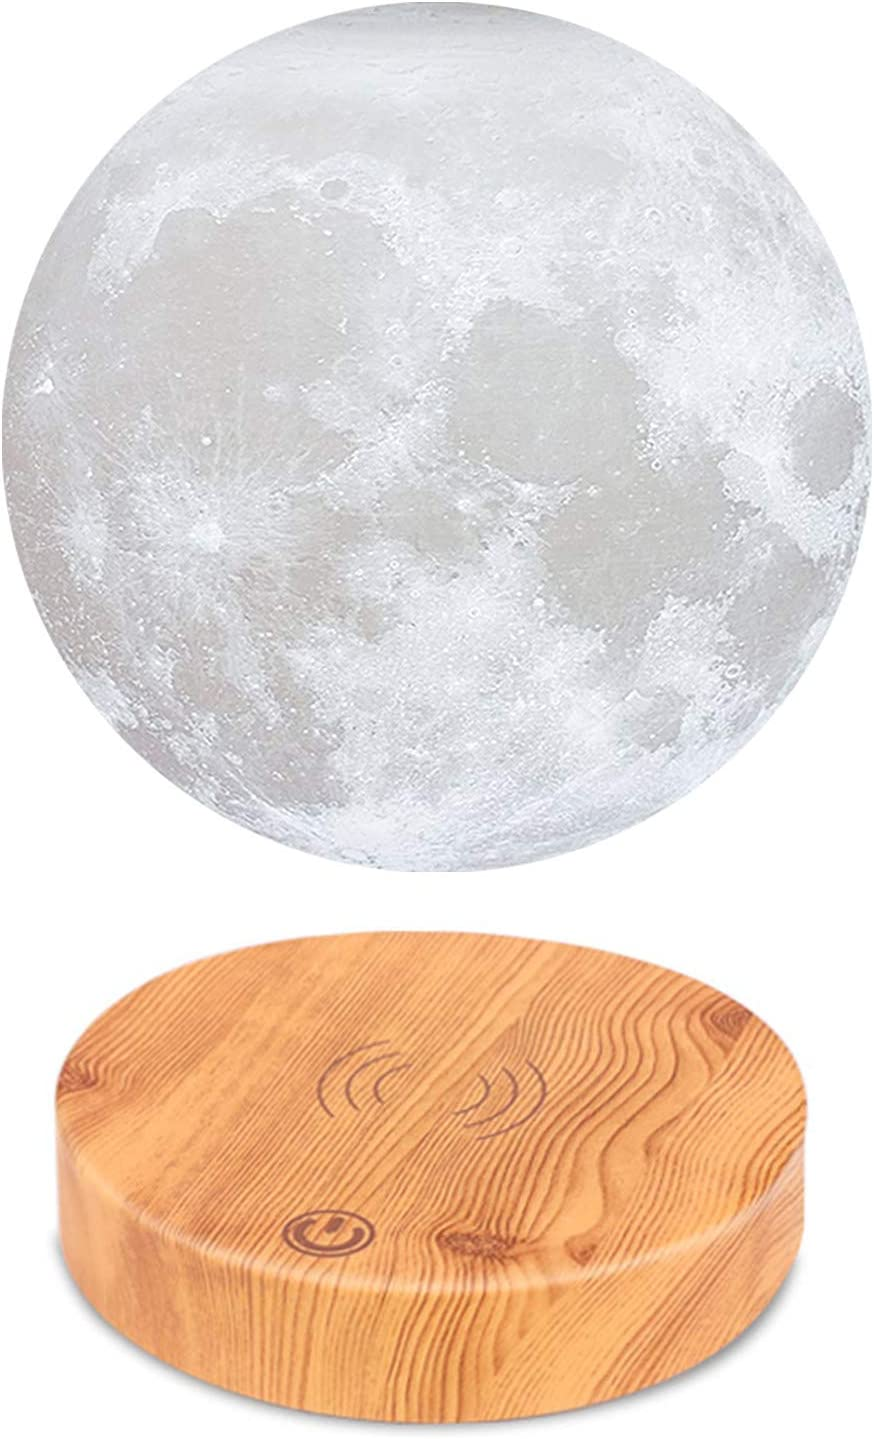 VGAzer Levitating Moon Lamp,Floating and Spinning in Air Freely with Wood Base and 3D Printing LED Moon Light,for Unique Holiday Gifts,Room Decor,Night Light,Office Desk Tech Toys White